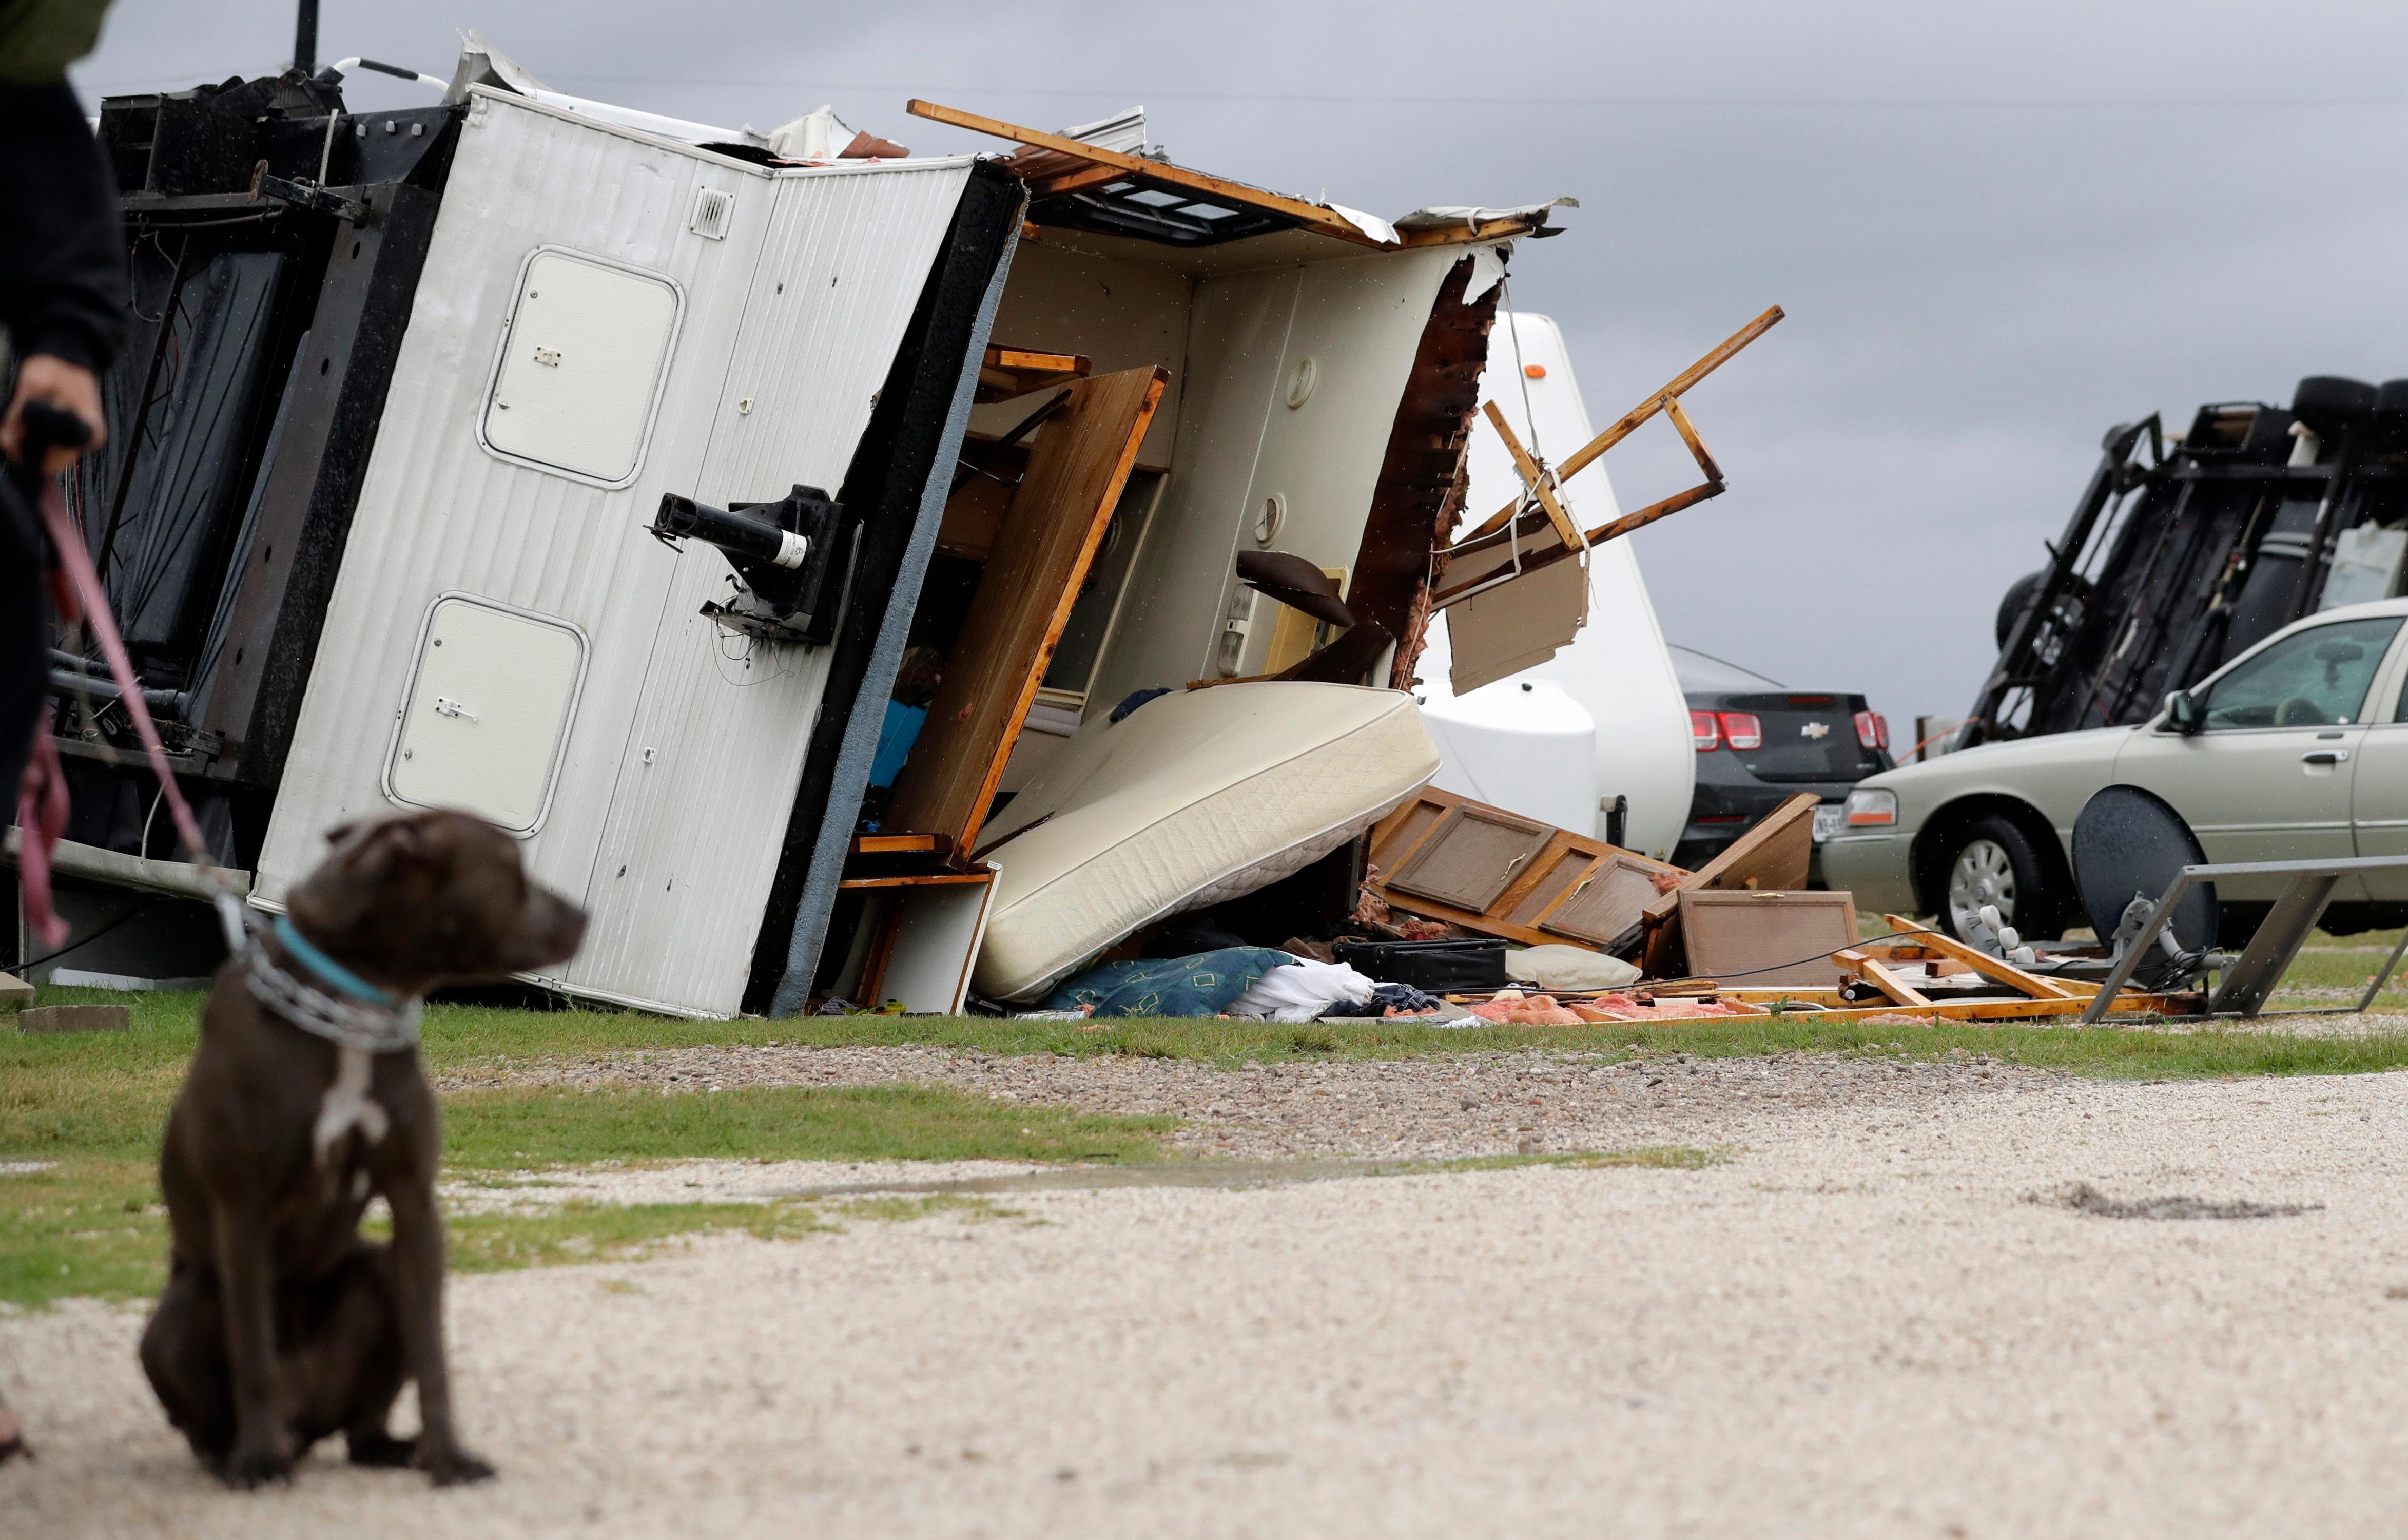 A trailer overturned in the wake of Hurricane Harvey lies on it's side, Saturday, Aug. 26, 2017, in Aransas Pass, Texas.  Harvey rolled over the Texas Gulf Coast on Saturday, smashing homes and businesses and lashing the shore with wind and rain so intense that drivers were forced off the road because they could not see in front of them.  (AP Photo/Eric Gay)